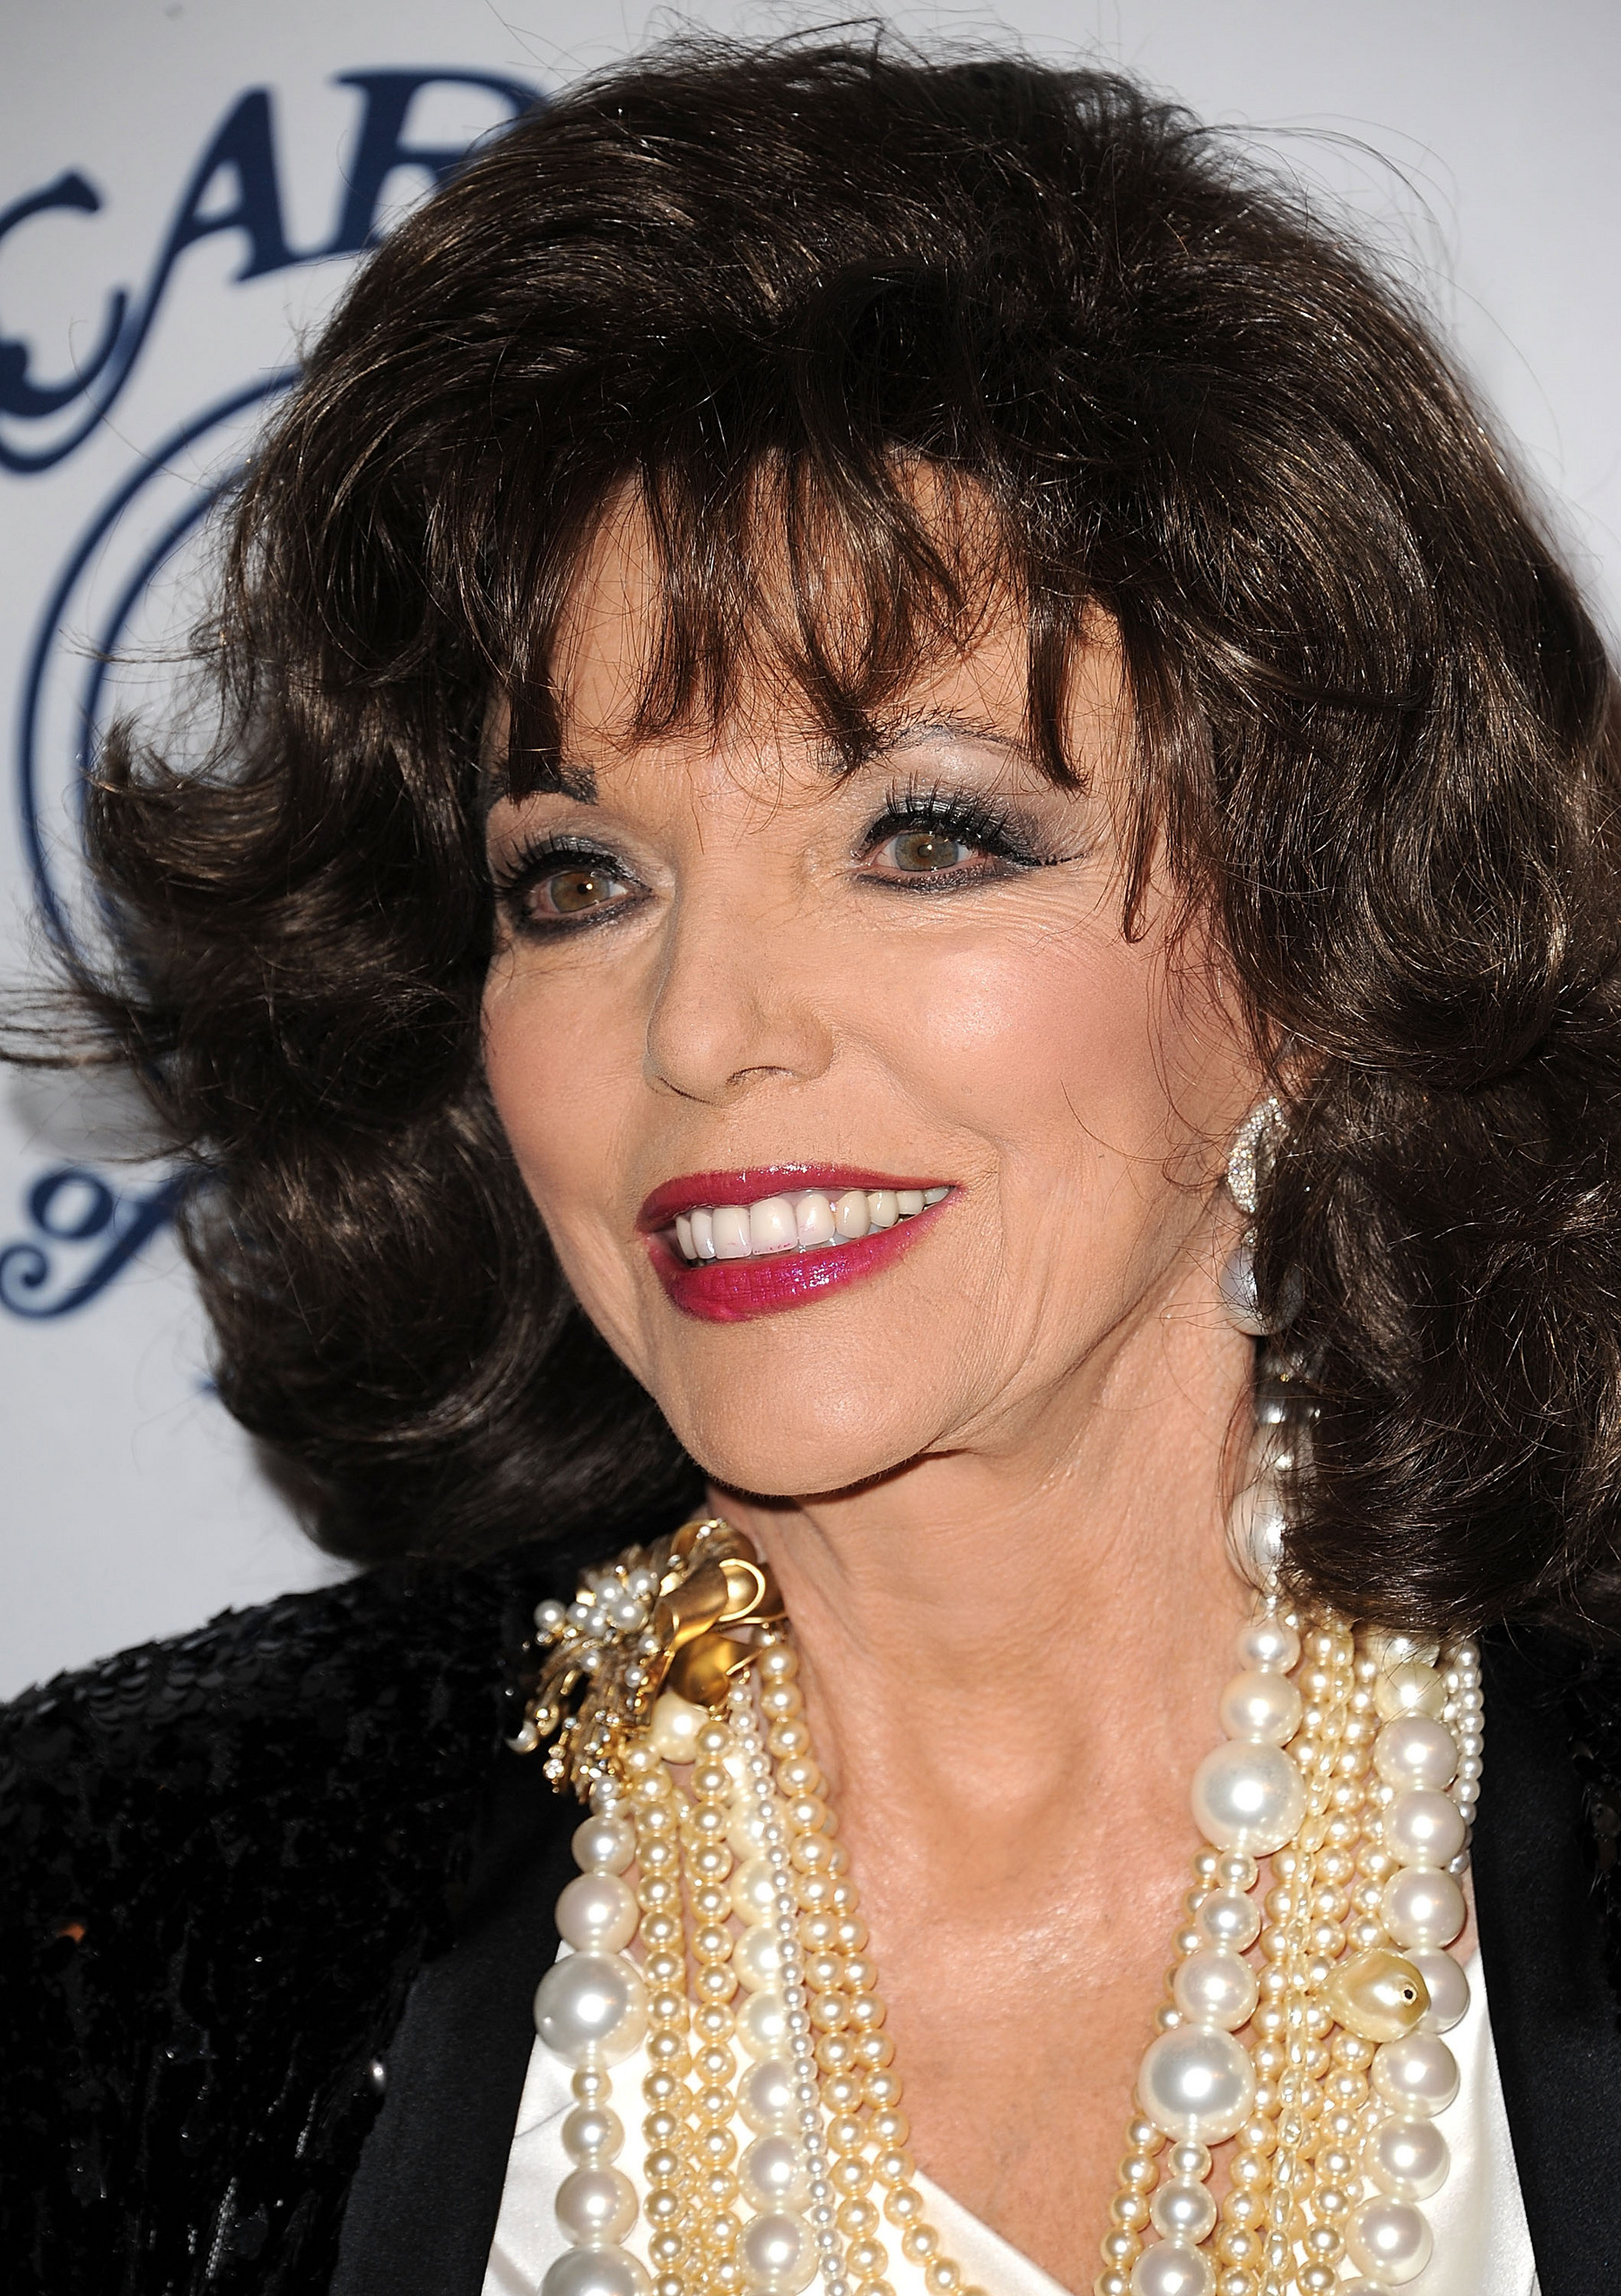 joan collins deadjoan collins 2017, joan collins young, joan collins фото, joan collins height, joan collins and anthony newley, joan collins pool, joan collins news, joan collins style, joan collins fashion, joan collins fur, joan collins star trek, joan collins wiki, joan collins insta, joan collins dead, joan collins beauty, joan collins photoshoot, joan collins 1969, joan collins fan mail, joan collins i am woman, joan collins batman